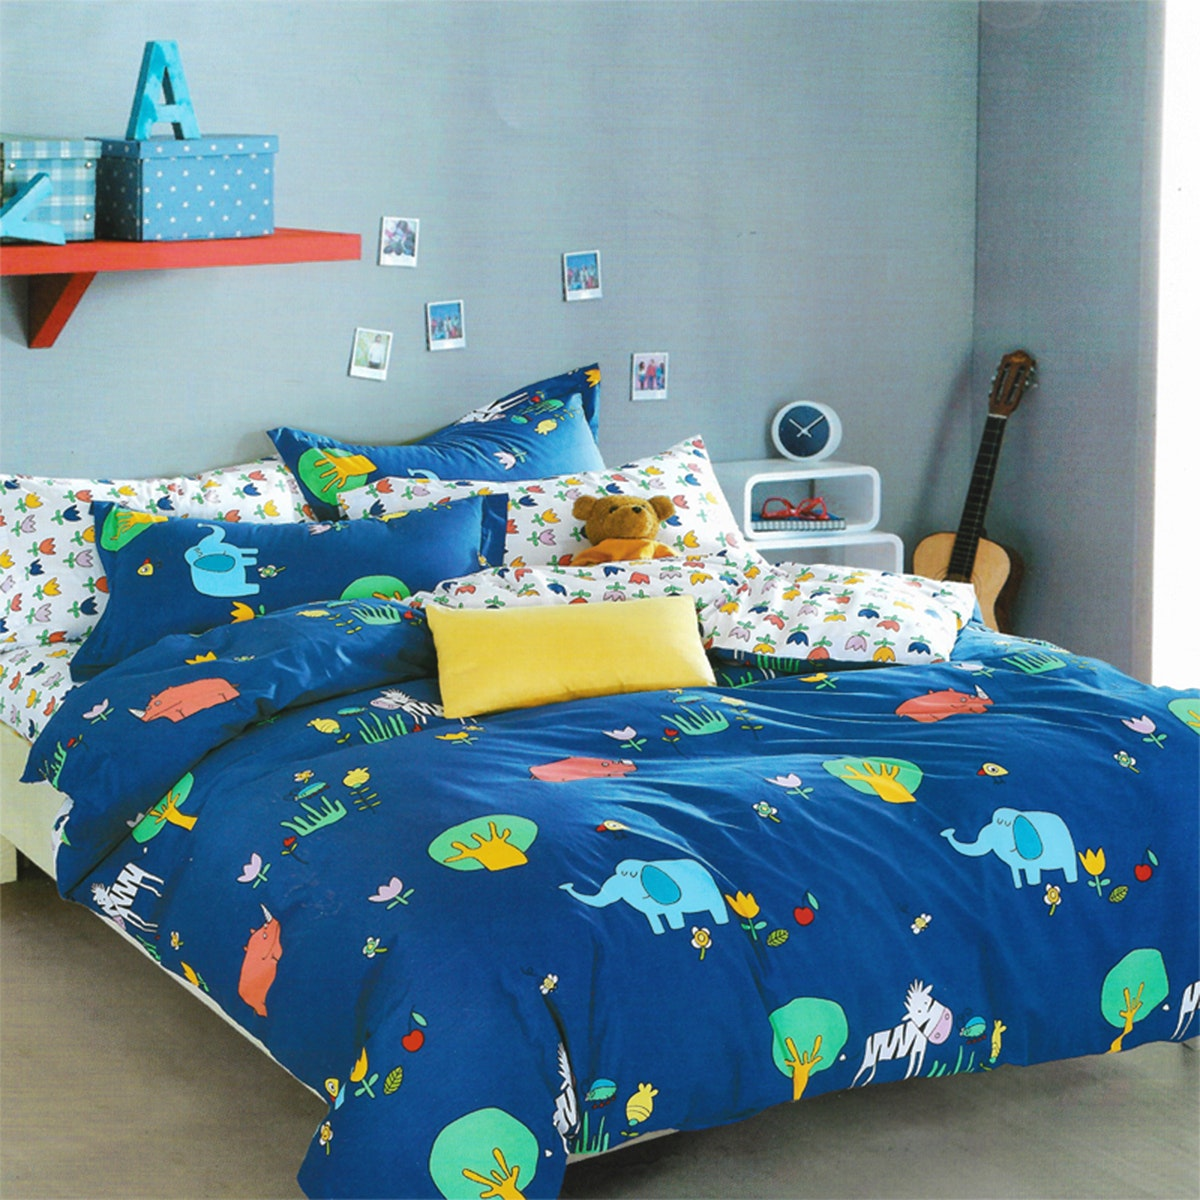 Sleep Buddy Set Sprei dan Bed Cover Baby Elephants Cotton Sateen 180x200x30